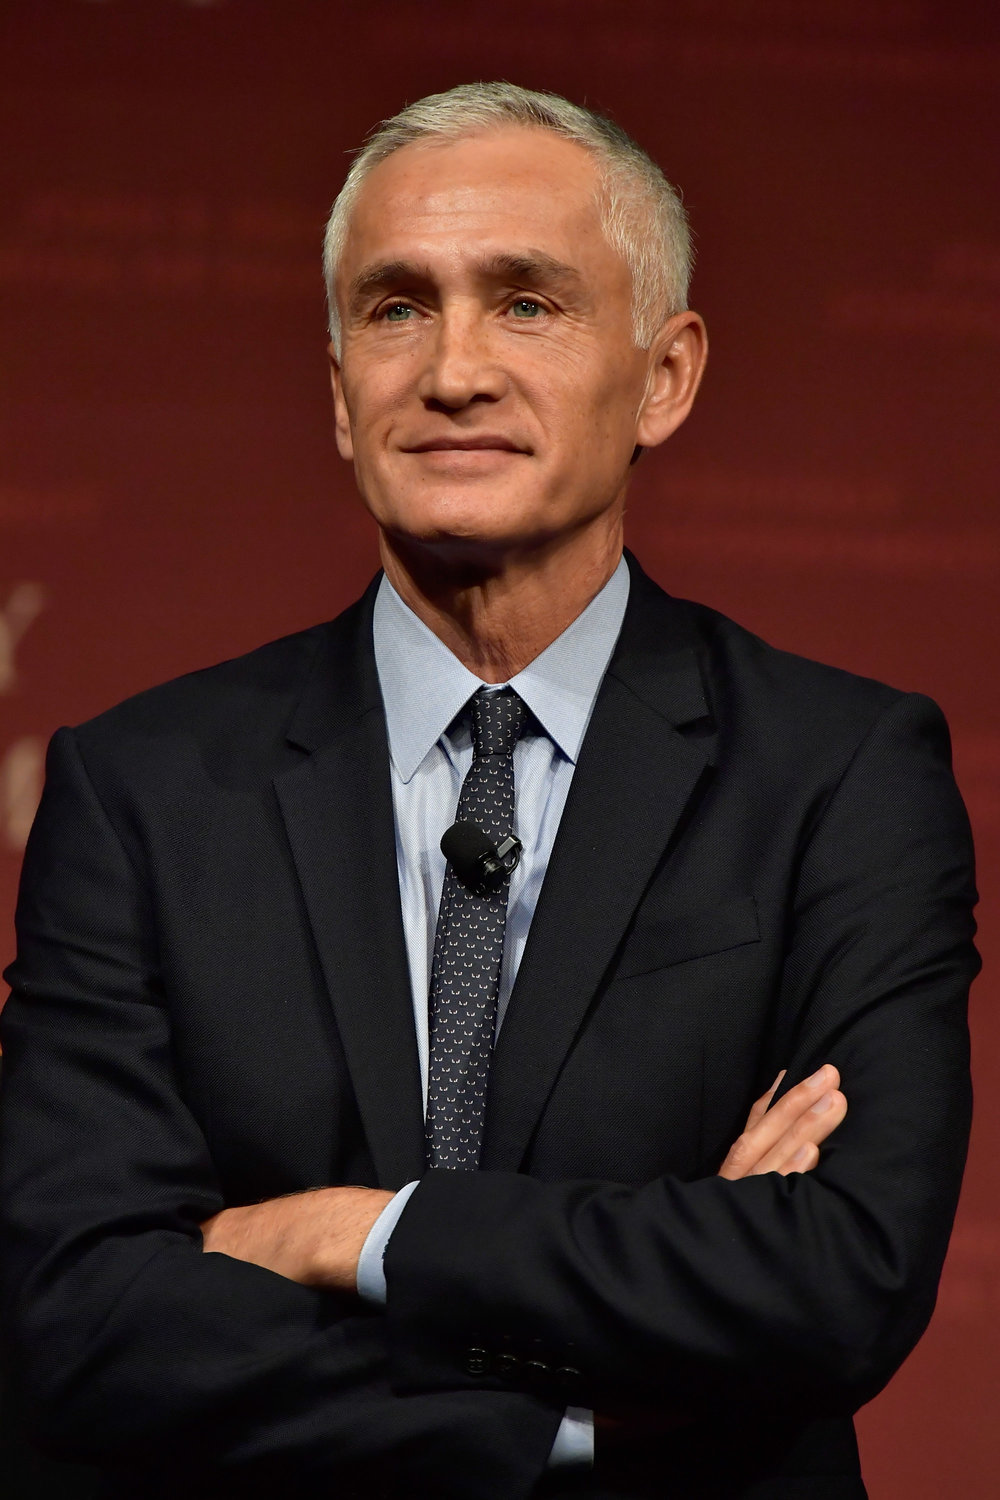 Jorge Ramos at Harvard